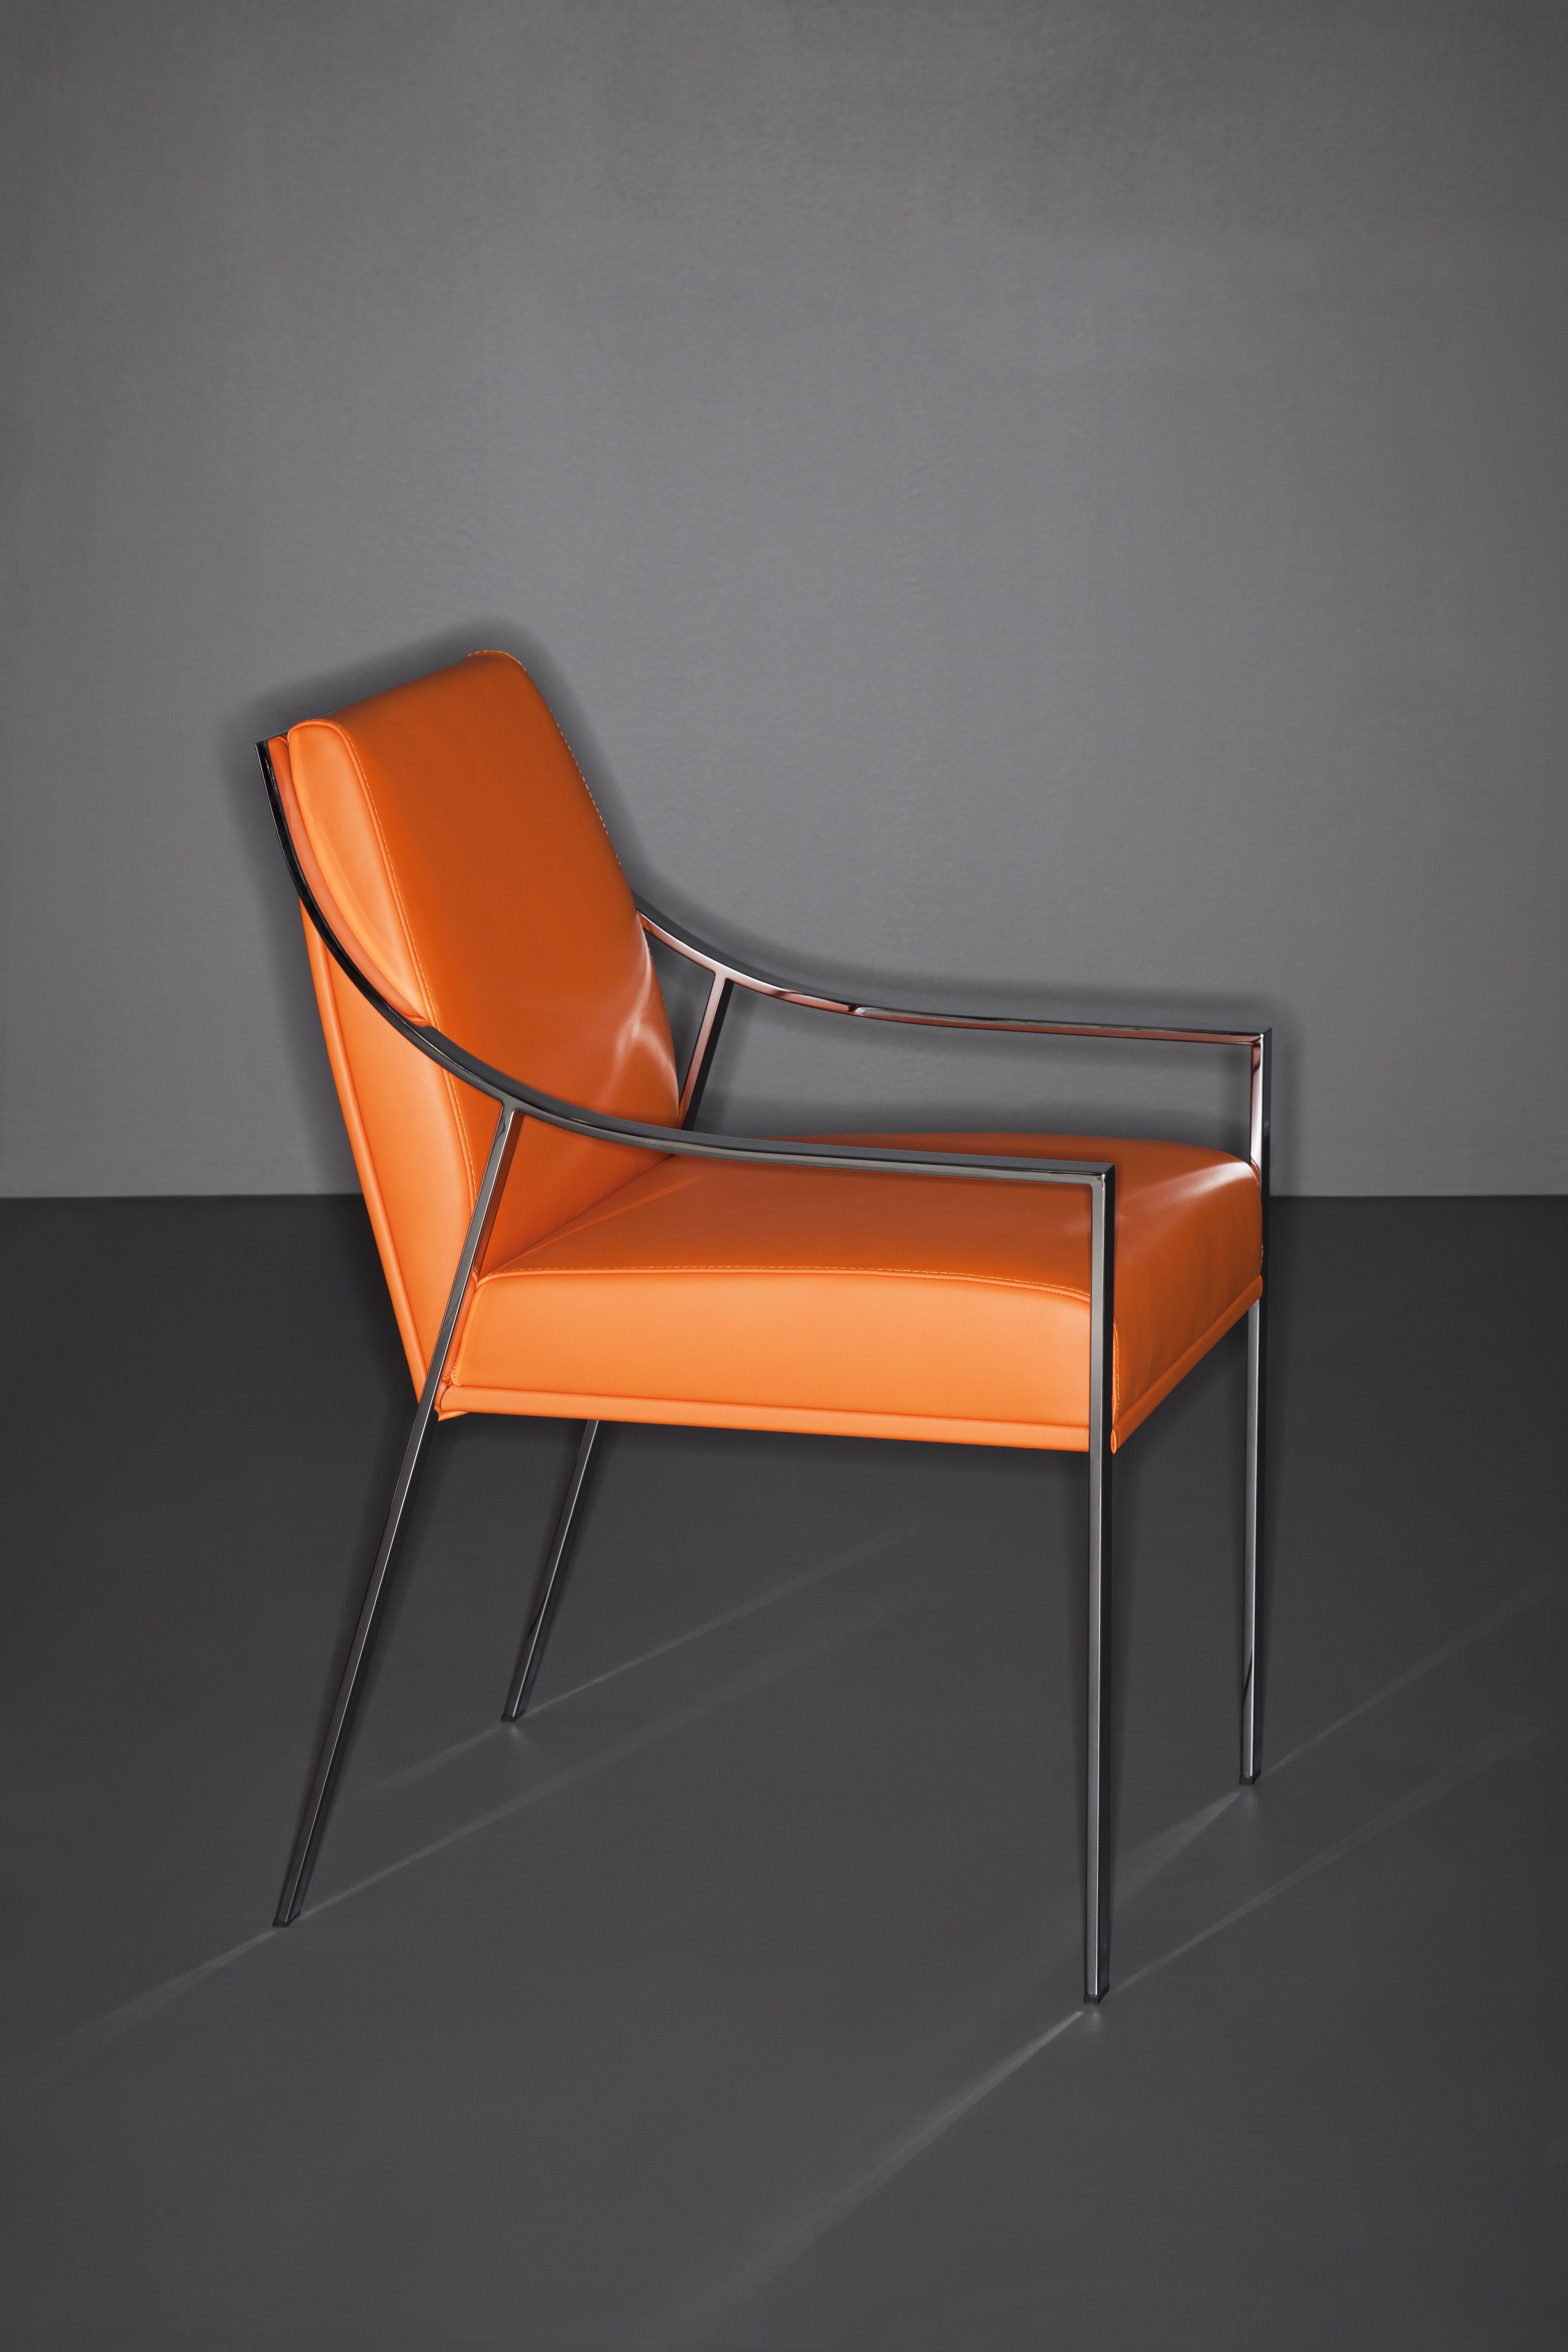 Aileron Chair With Orange Leather For Holly Hunt. Available At The DD  Building Suite 503